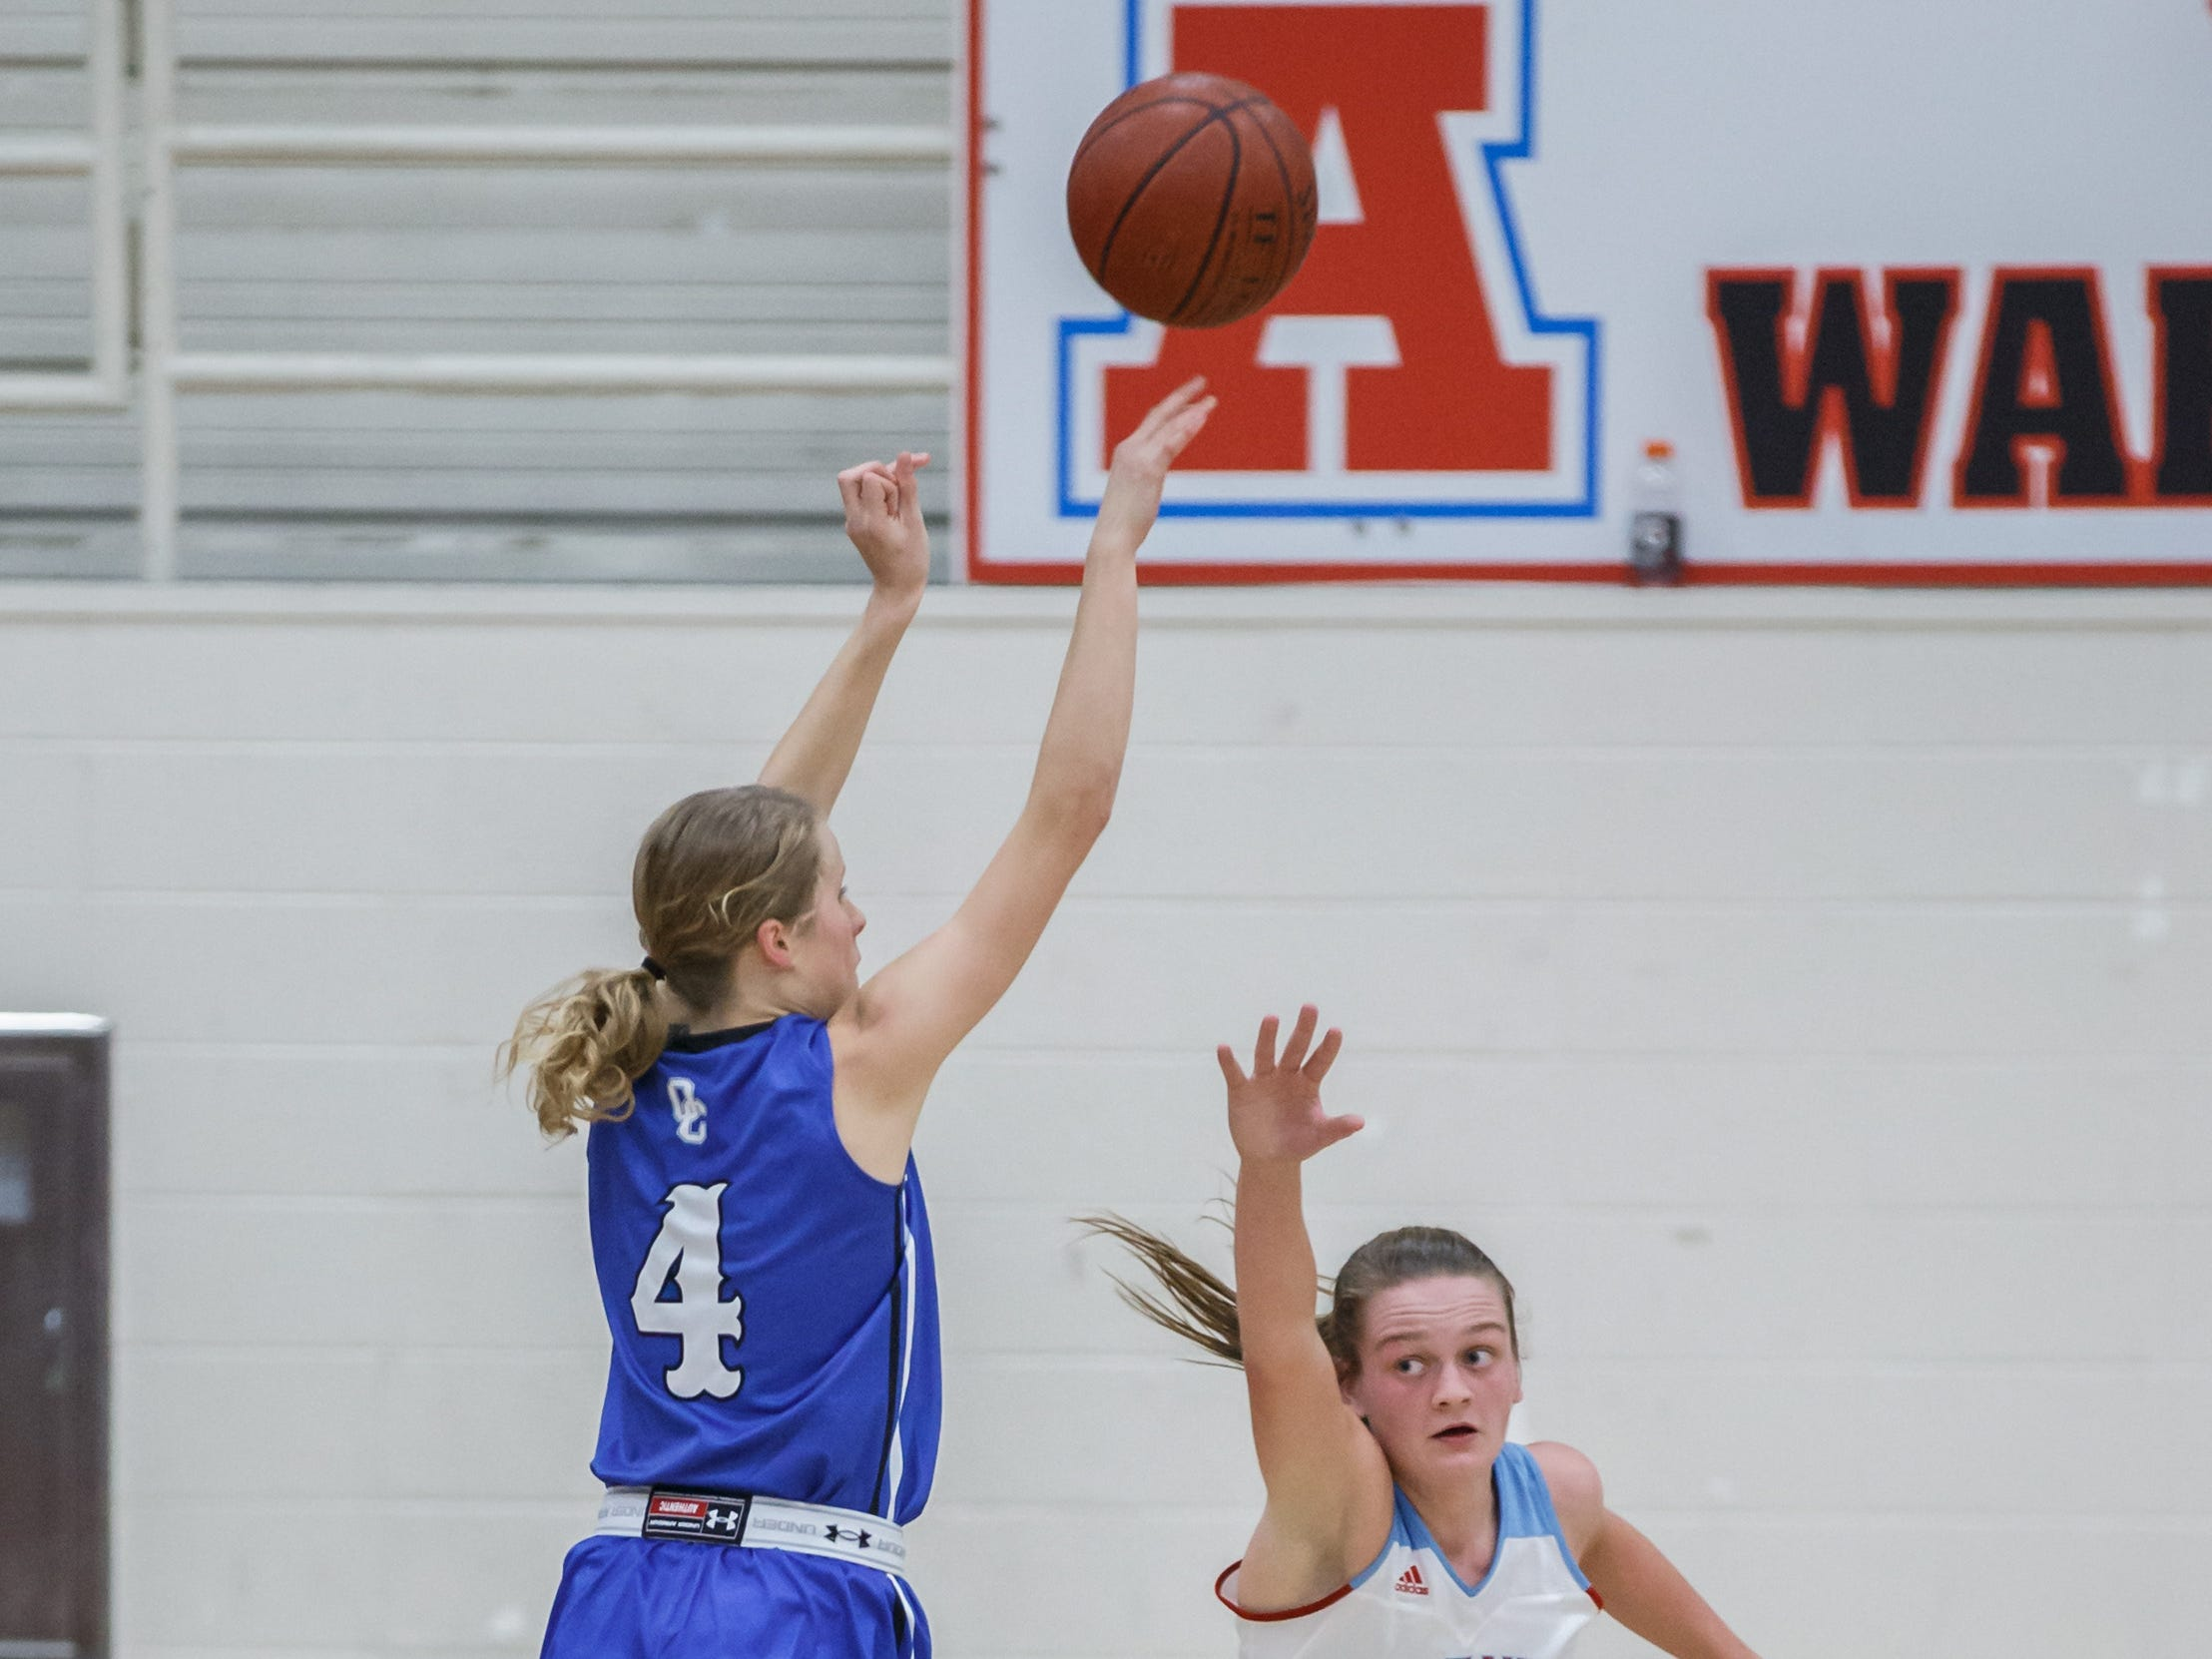 Oak Creek senior Maddie Gard (4) elevates for three over Arrowhead's Phoebe Frentzel (15) during the game in Hartland on Friday, Nov. 16, 2018.